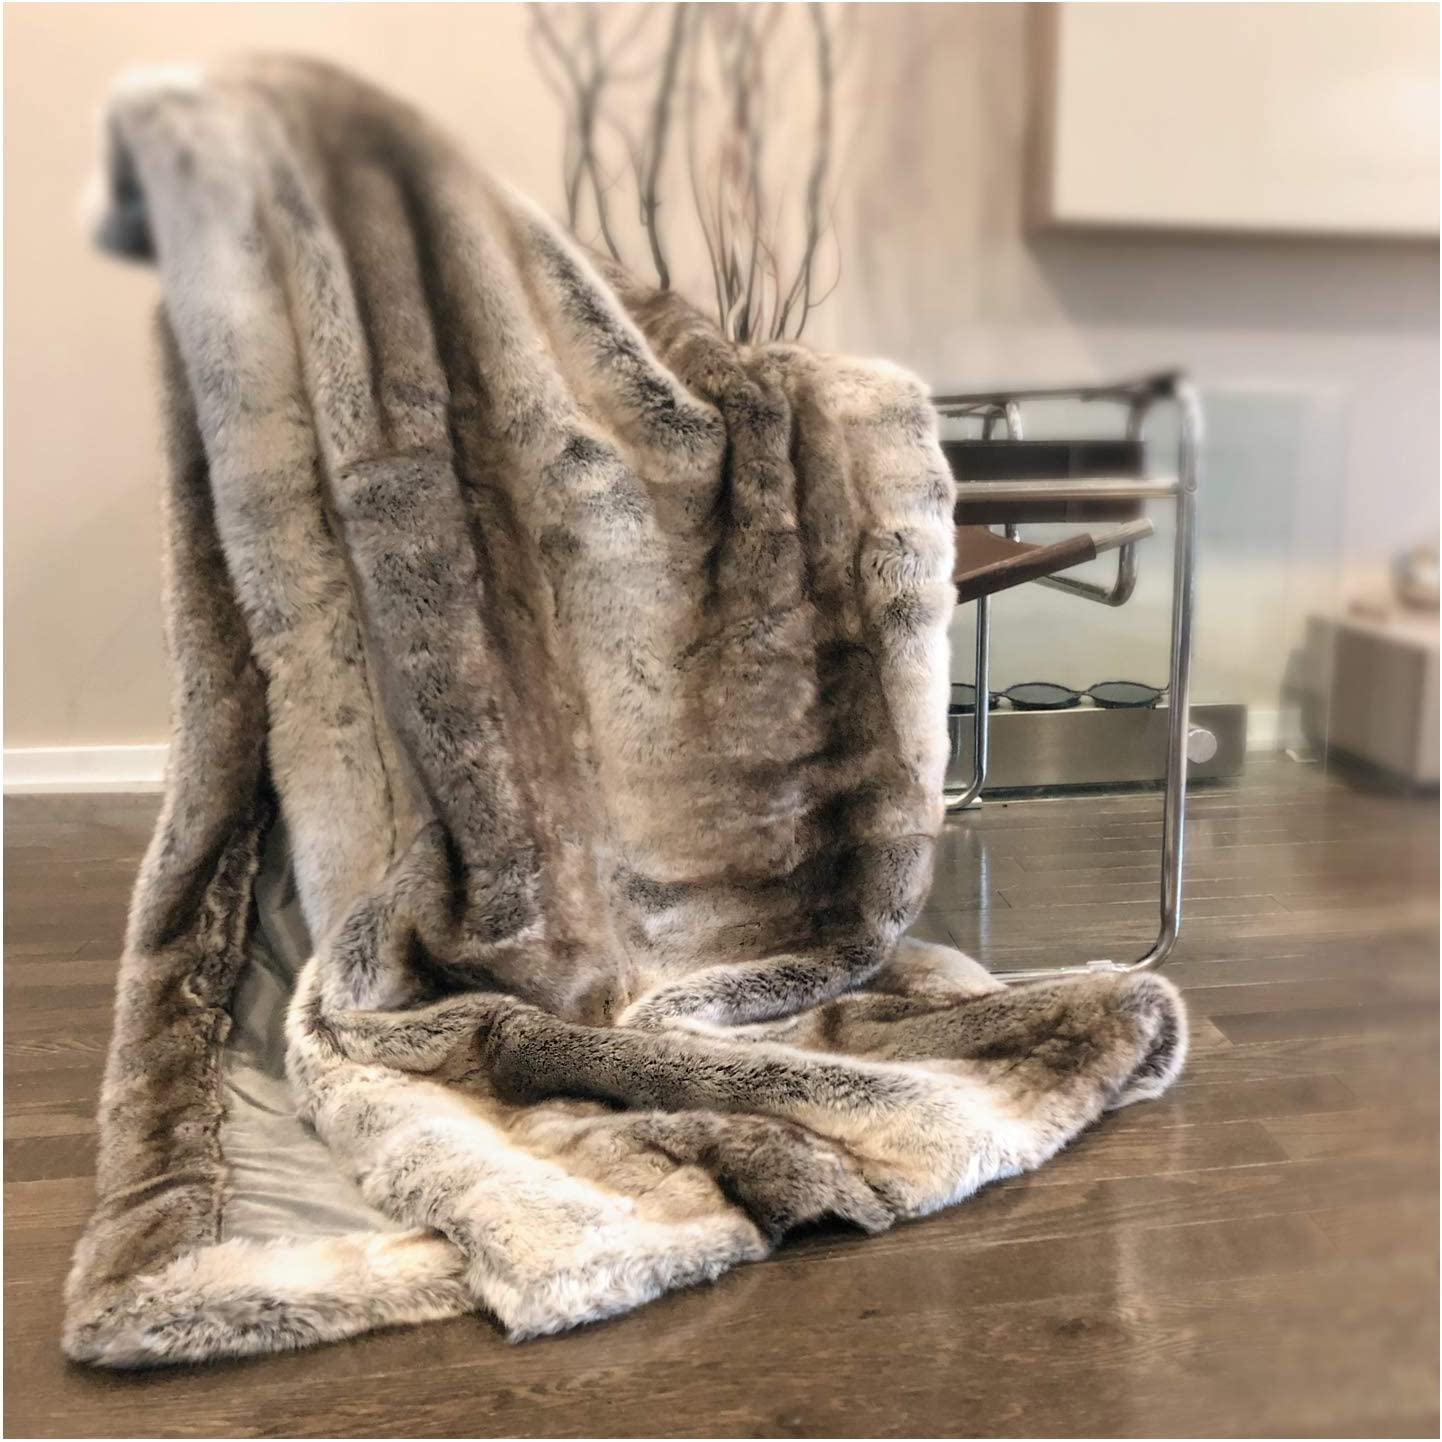 Amazon Com Eikei Luxury Faux Fur Throw Blanket Super Soft Oversized Thick Warm Afghan Reversible To Plush Velvet In Tan Grey Wolf Cream Mink Or Blush Chinchilla Machine Washable 60 By 70 Inch